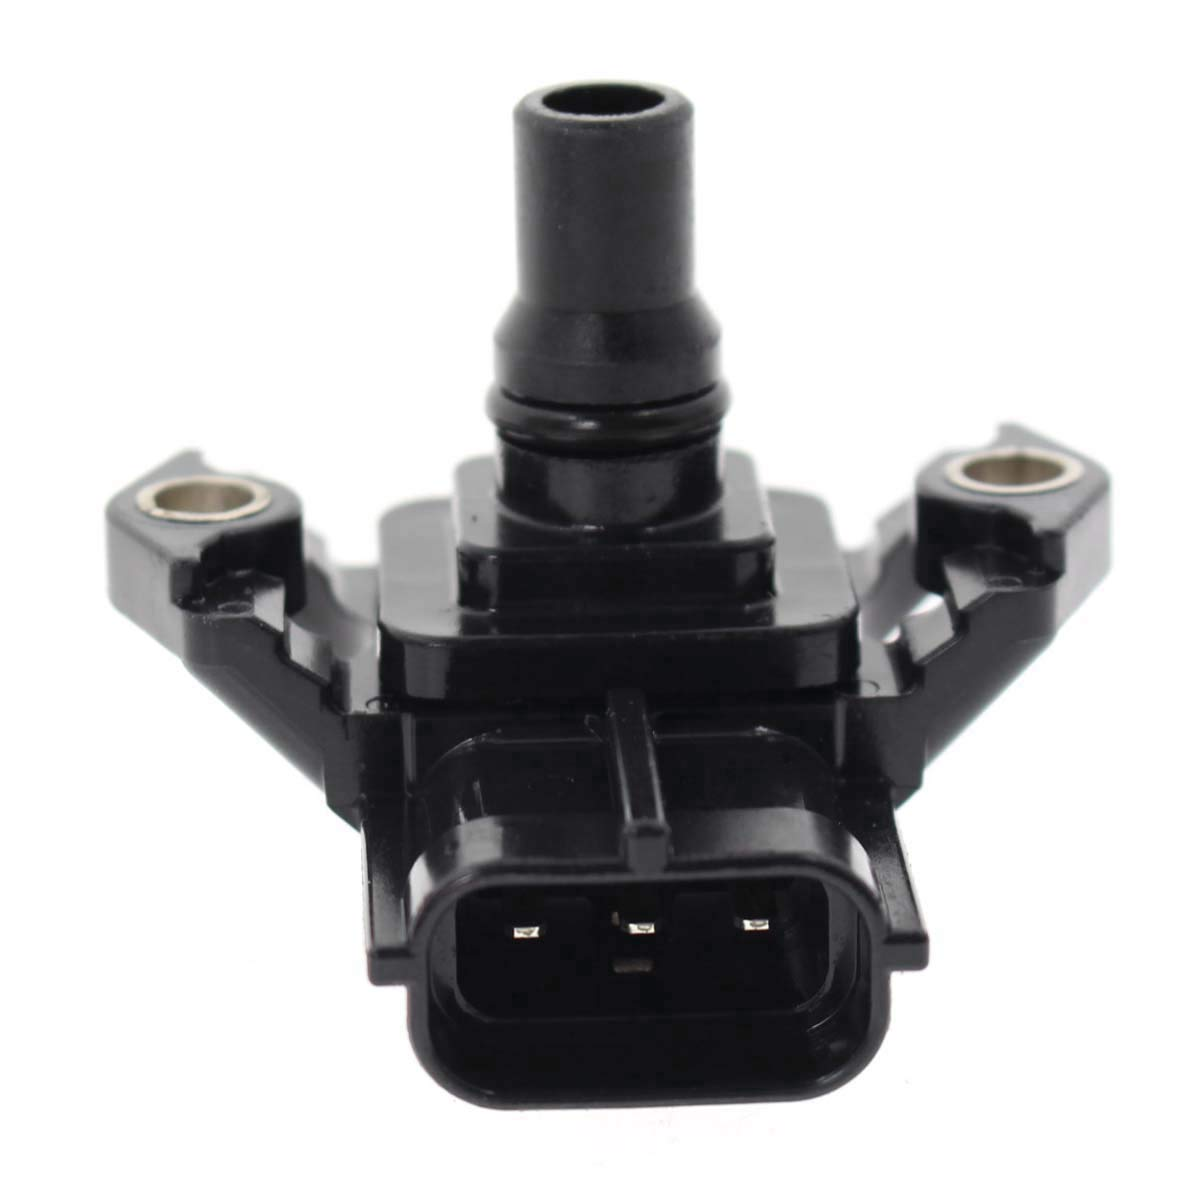 MOTOALL Air Pressure Sensor for 3089953 w/o Ring Assy Polaris Sportsman 500 EFI Brand New by MOTOALL